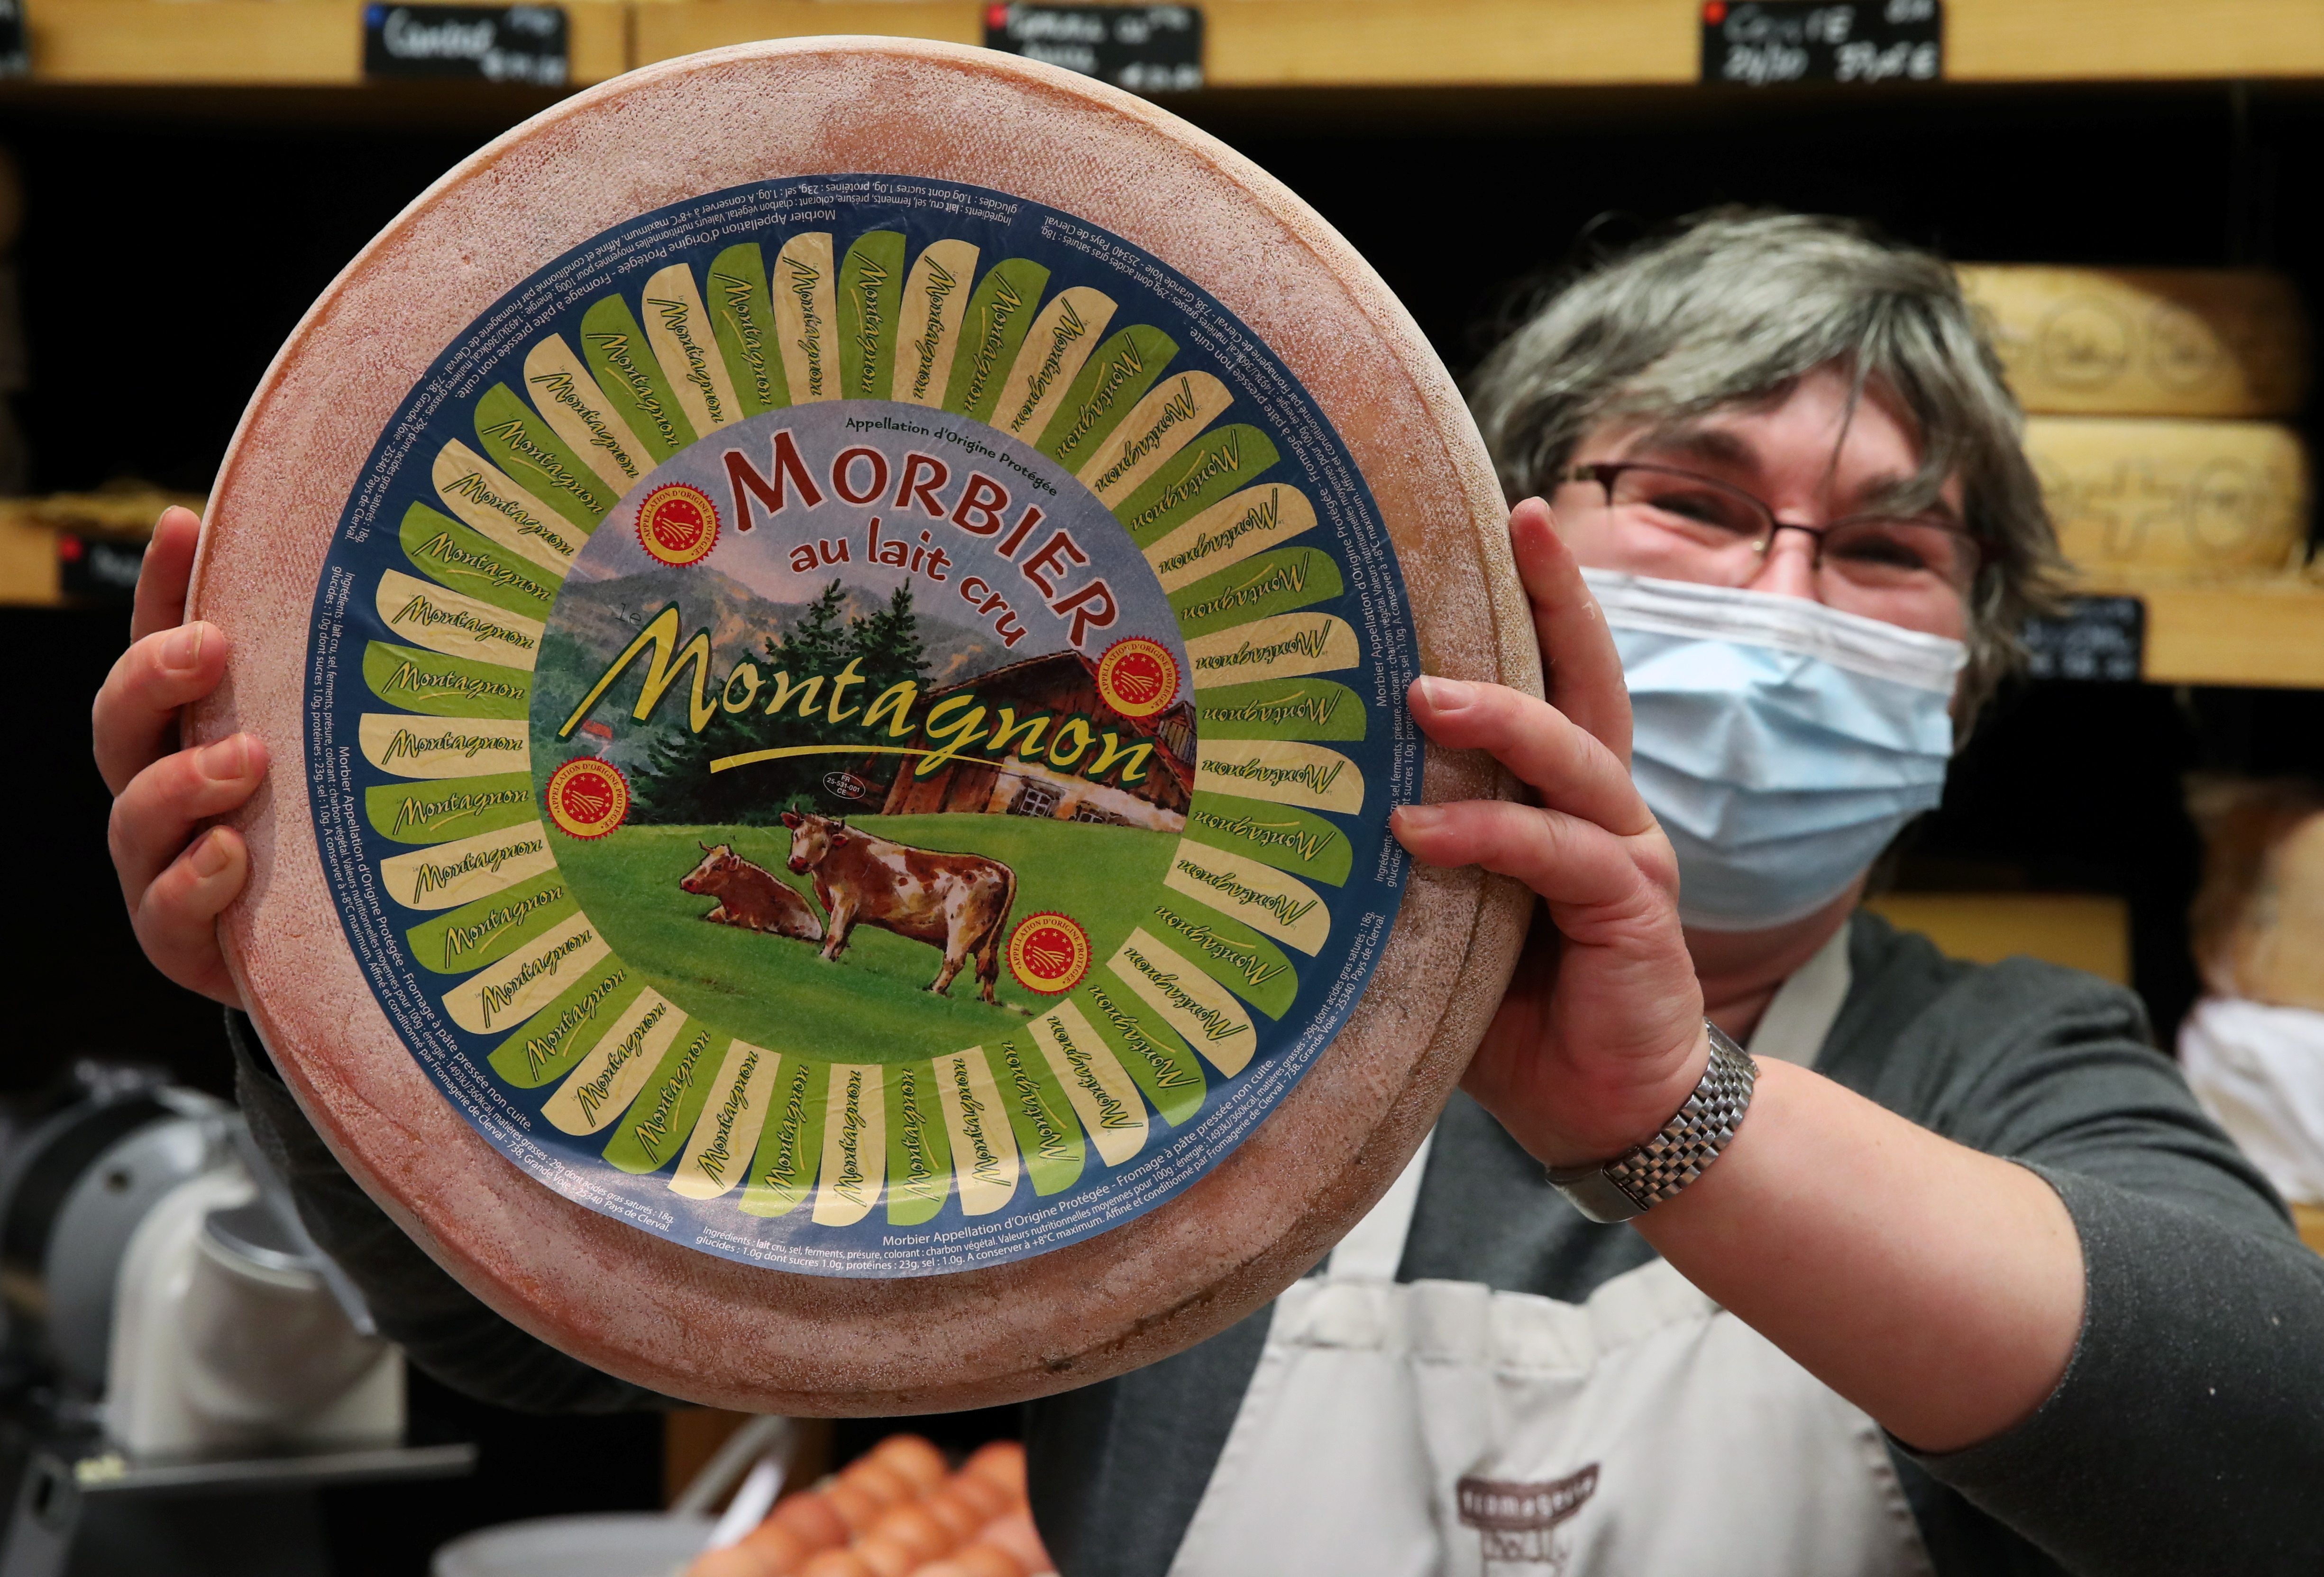 The owner of a shop specialised in cheeses shows a wheel of Morbier cheese, in Brussels, Belgium December 17, 2020. REUTERS/Yves Herman